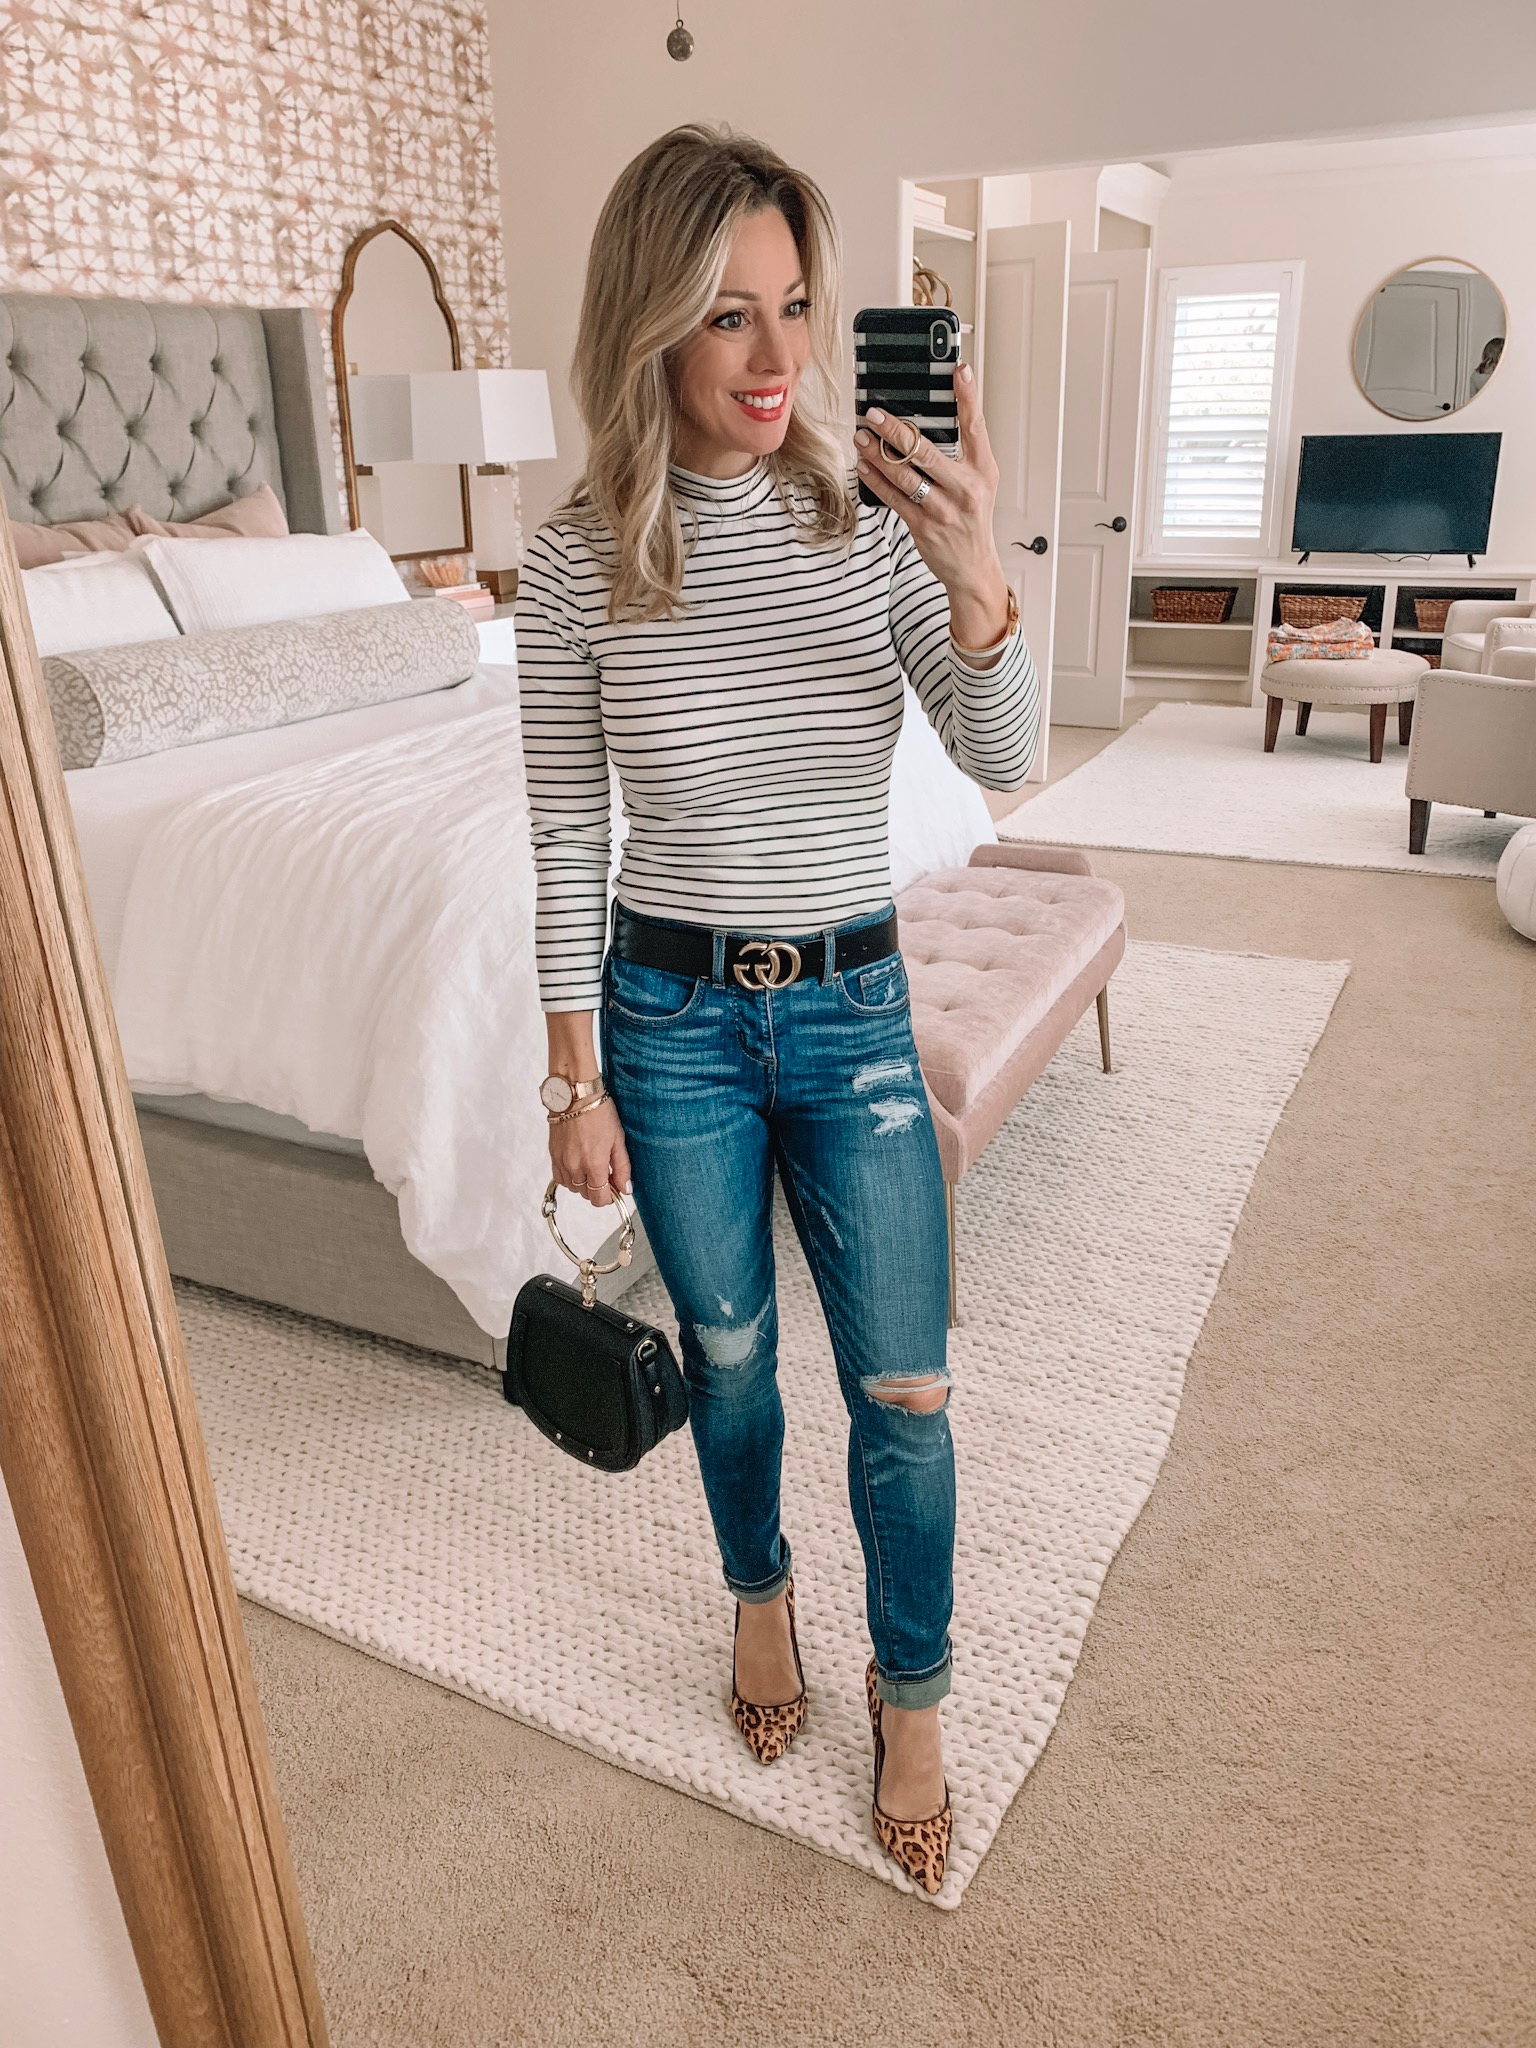 Cute night out outfit - striped top, distressed jeans and leopard heels